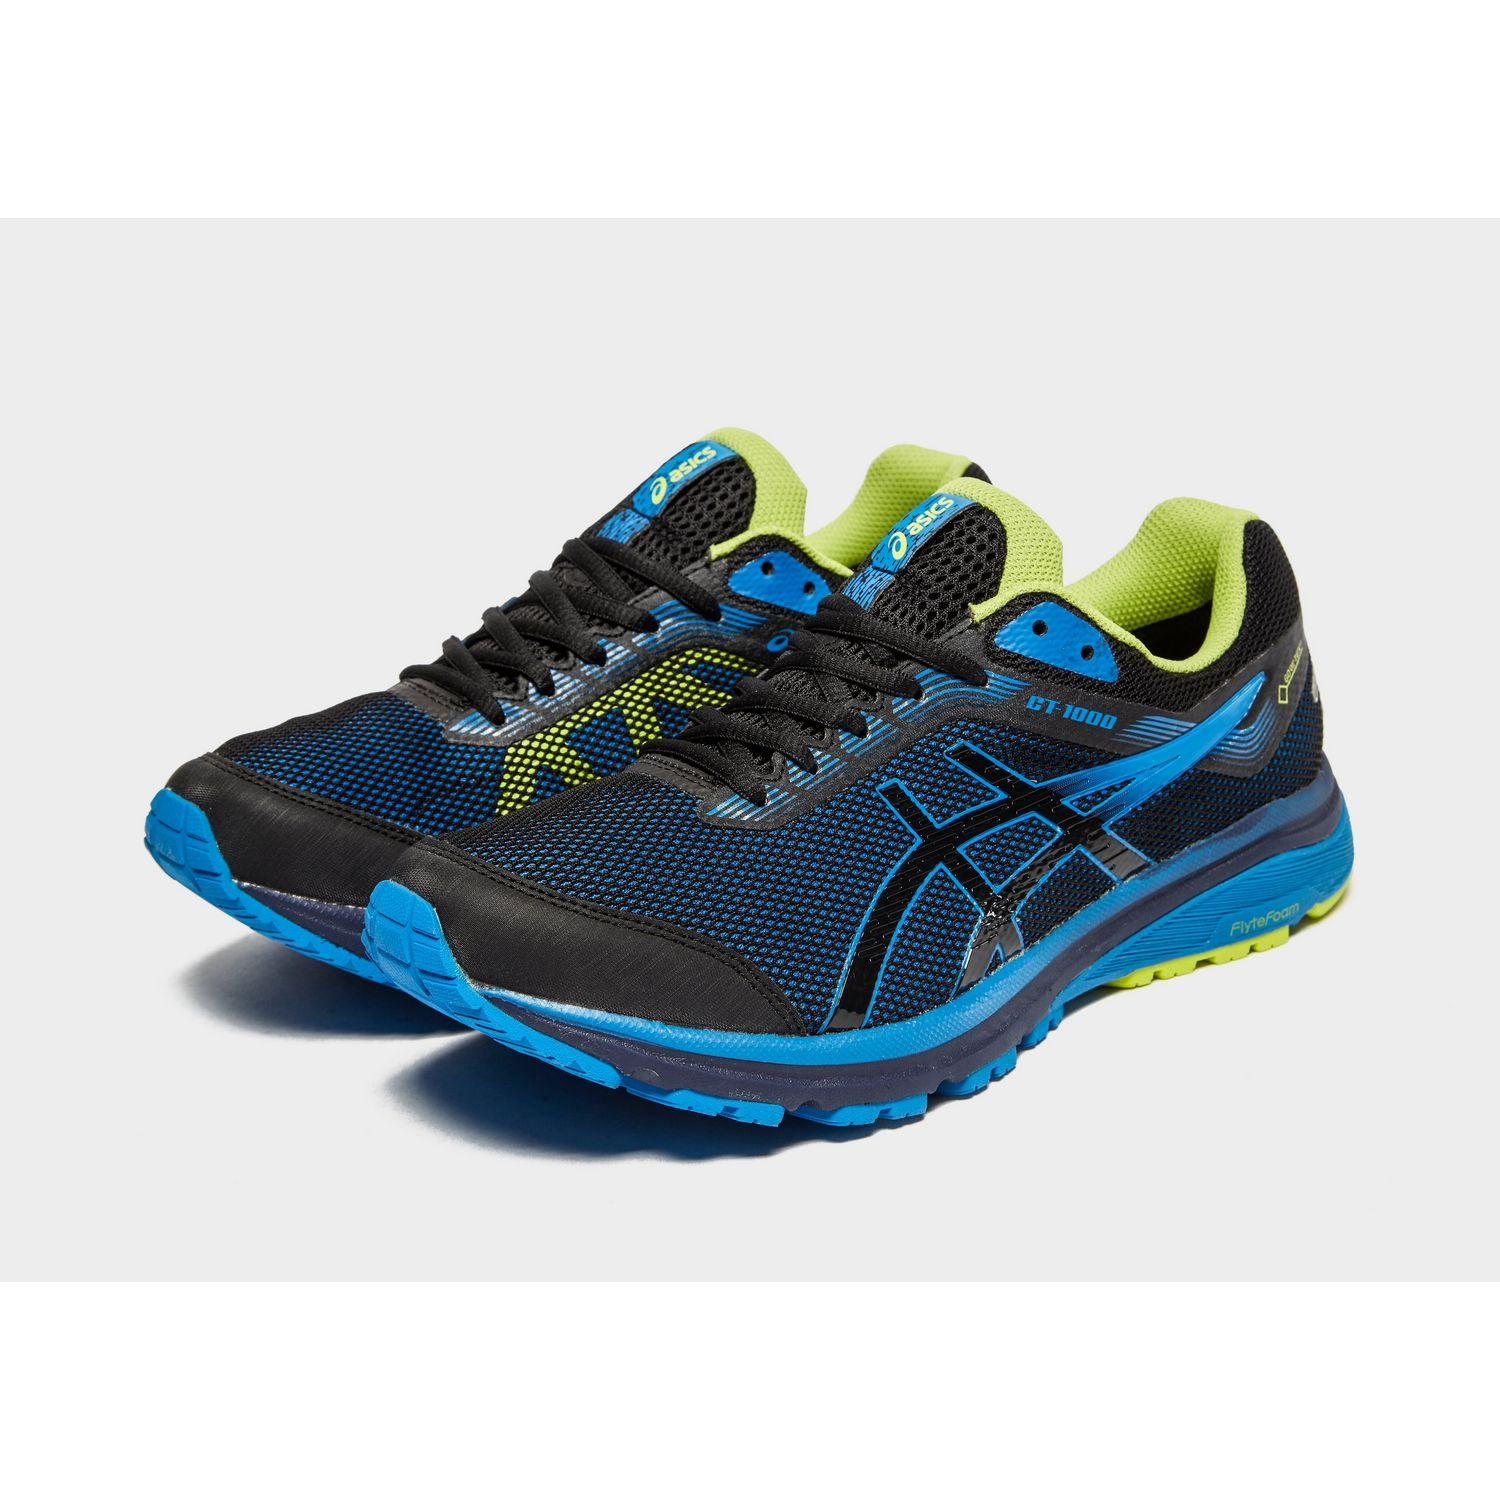 Asics Synthetic Gt-1000 7 Gtx in Black